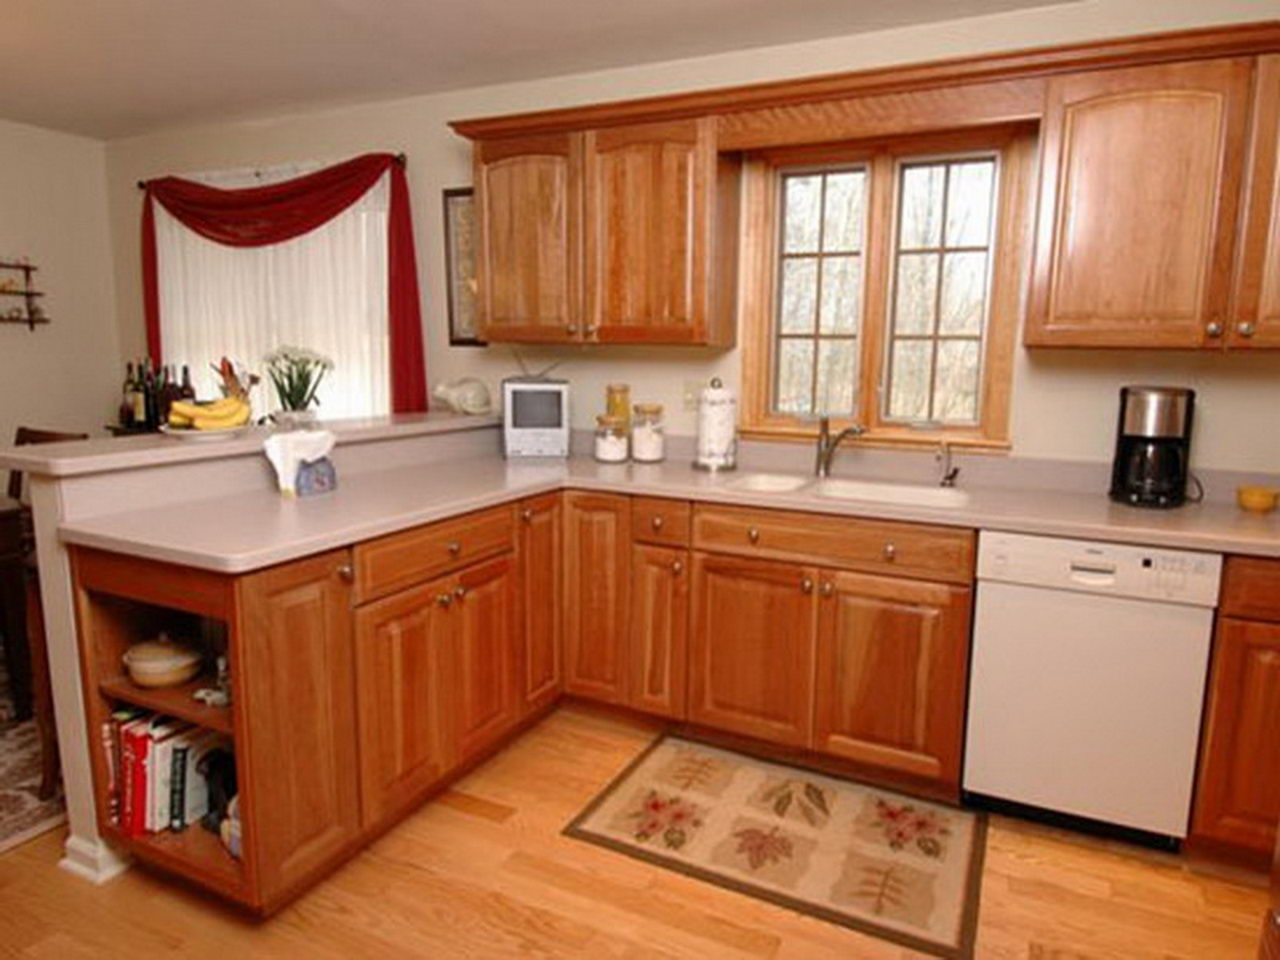 Kitchen cabinets and storage ideas homedizz - Kitchen cabinet ideas small spaces photos ...